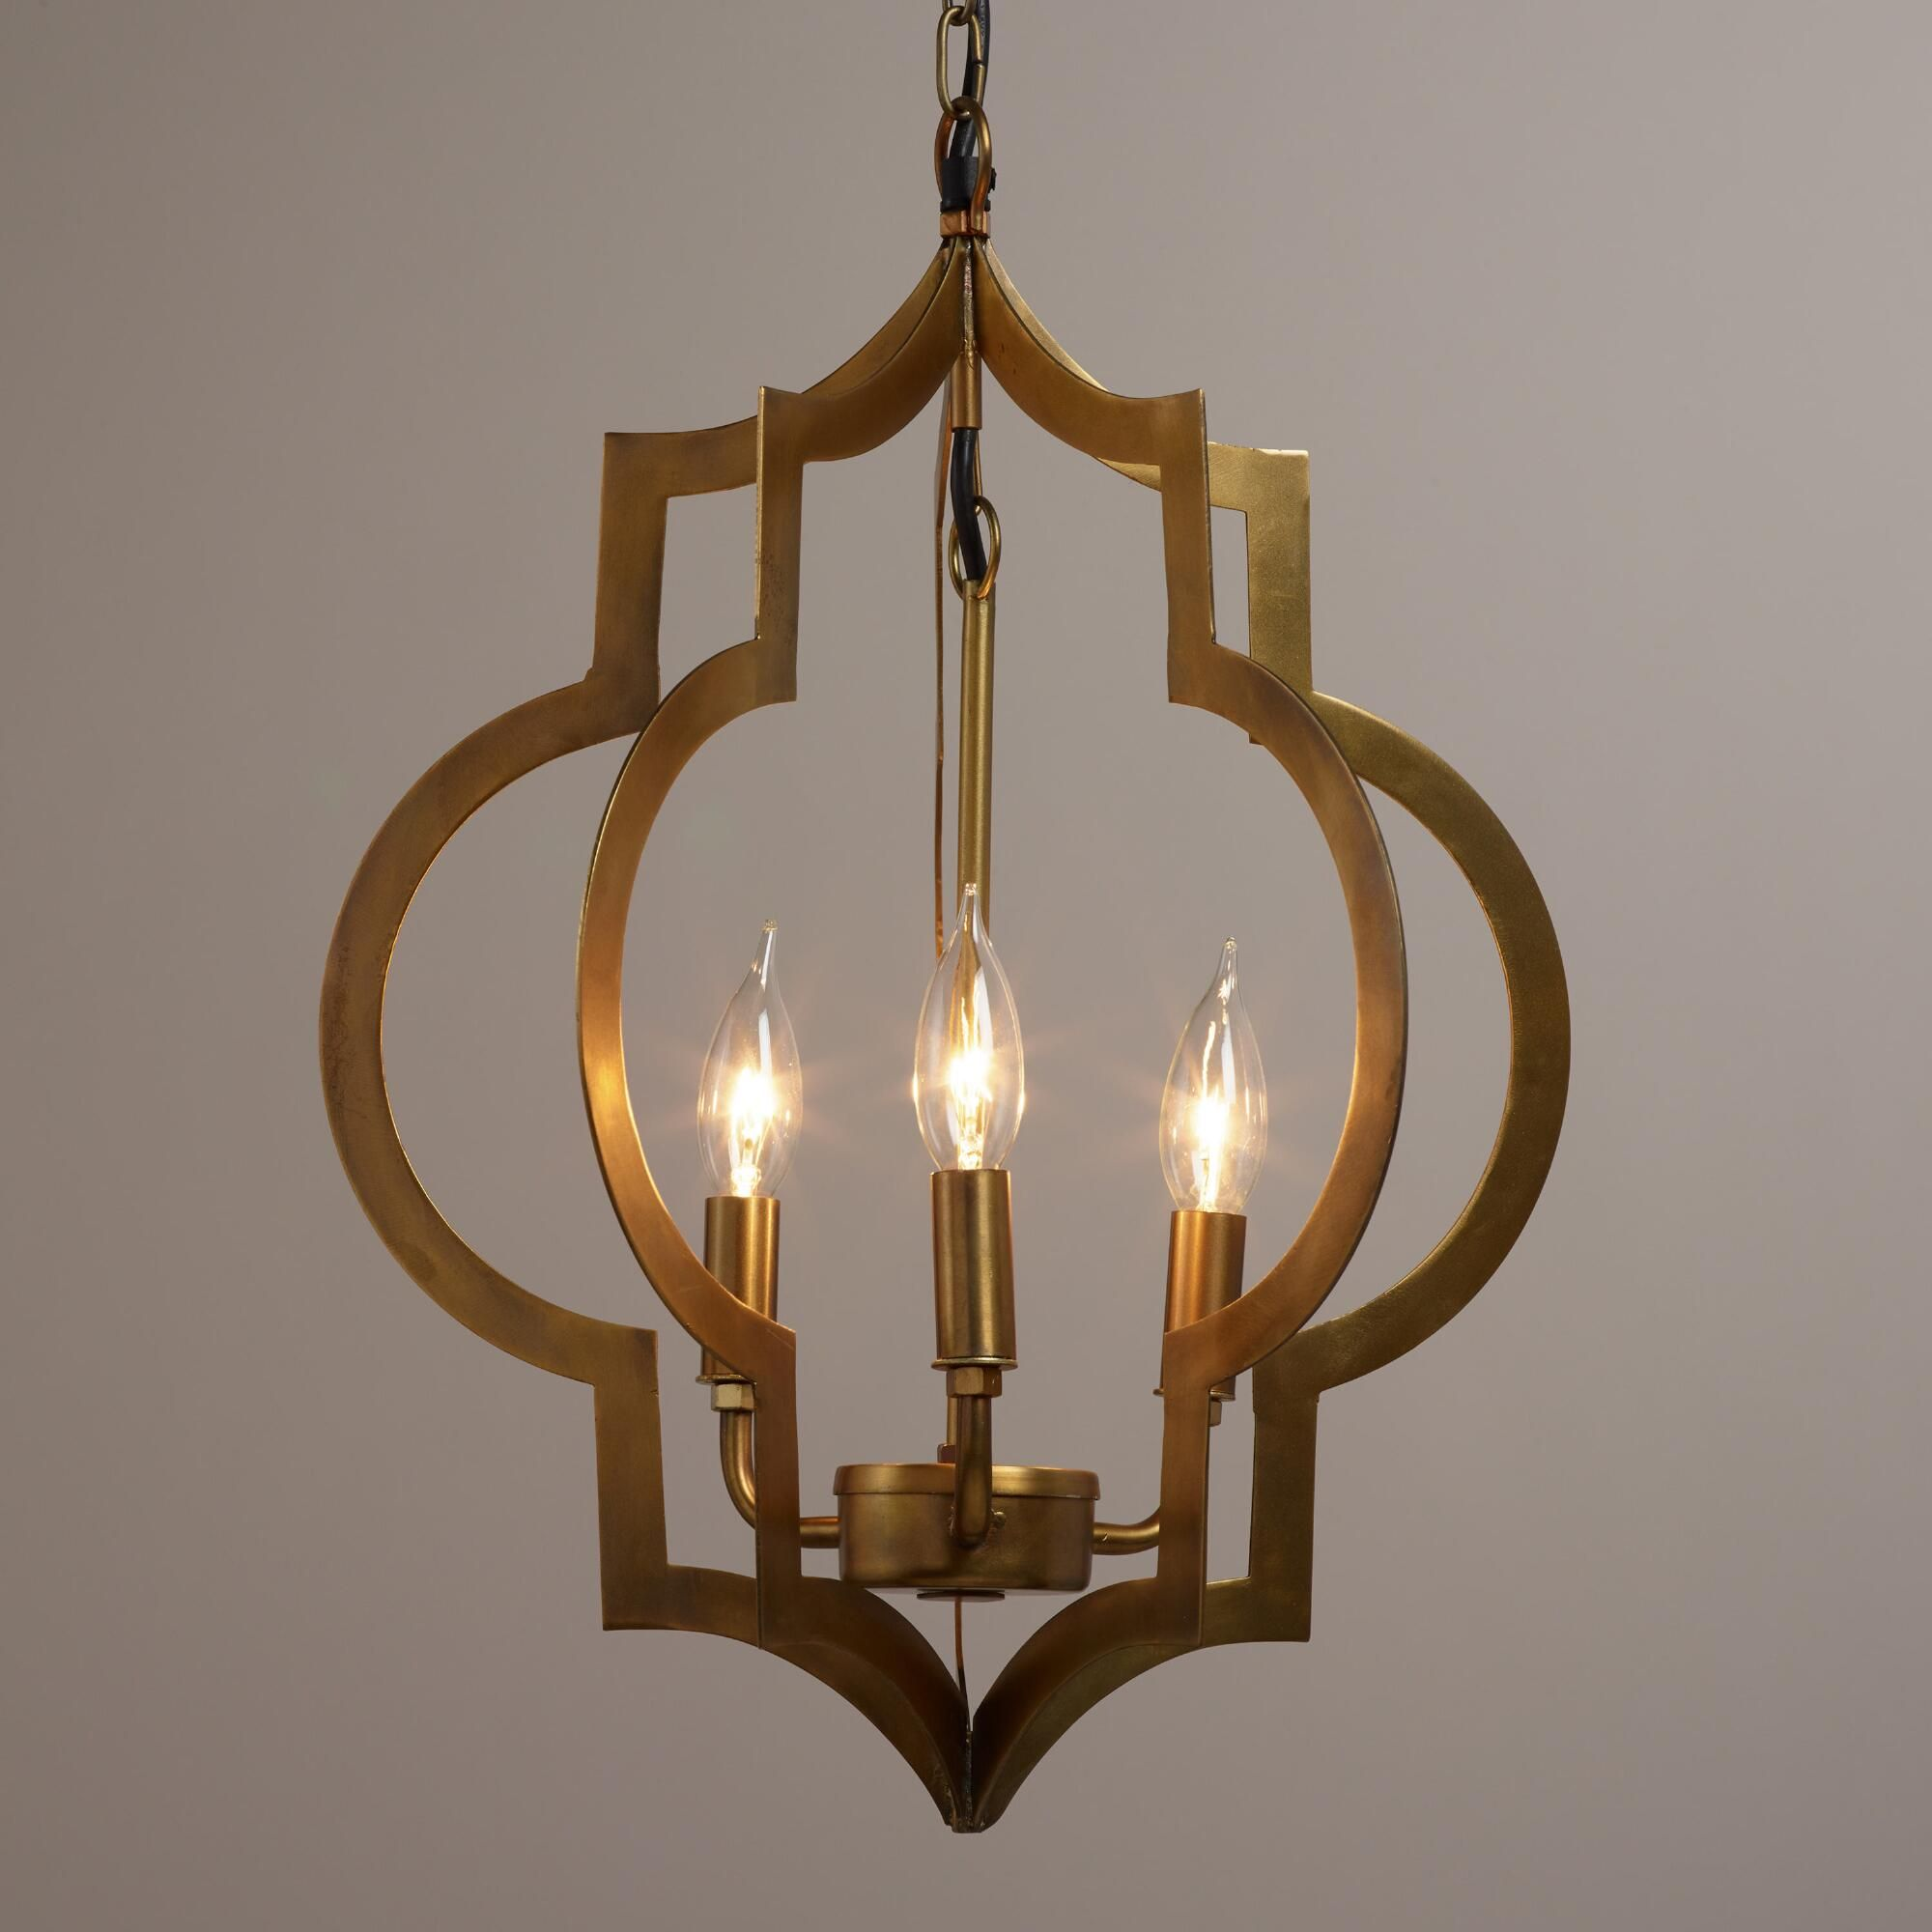 asian pendant lighting. gold quatrefoil 3light pendant lamp asian lighting n